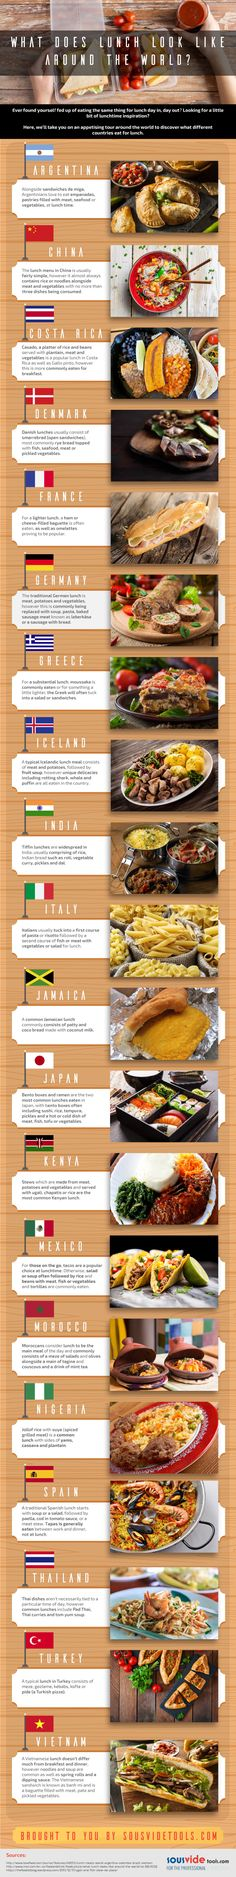 What Does Lunch Look Like Around The World #Infographic #Food #Travel